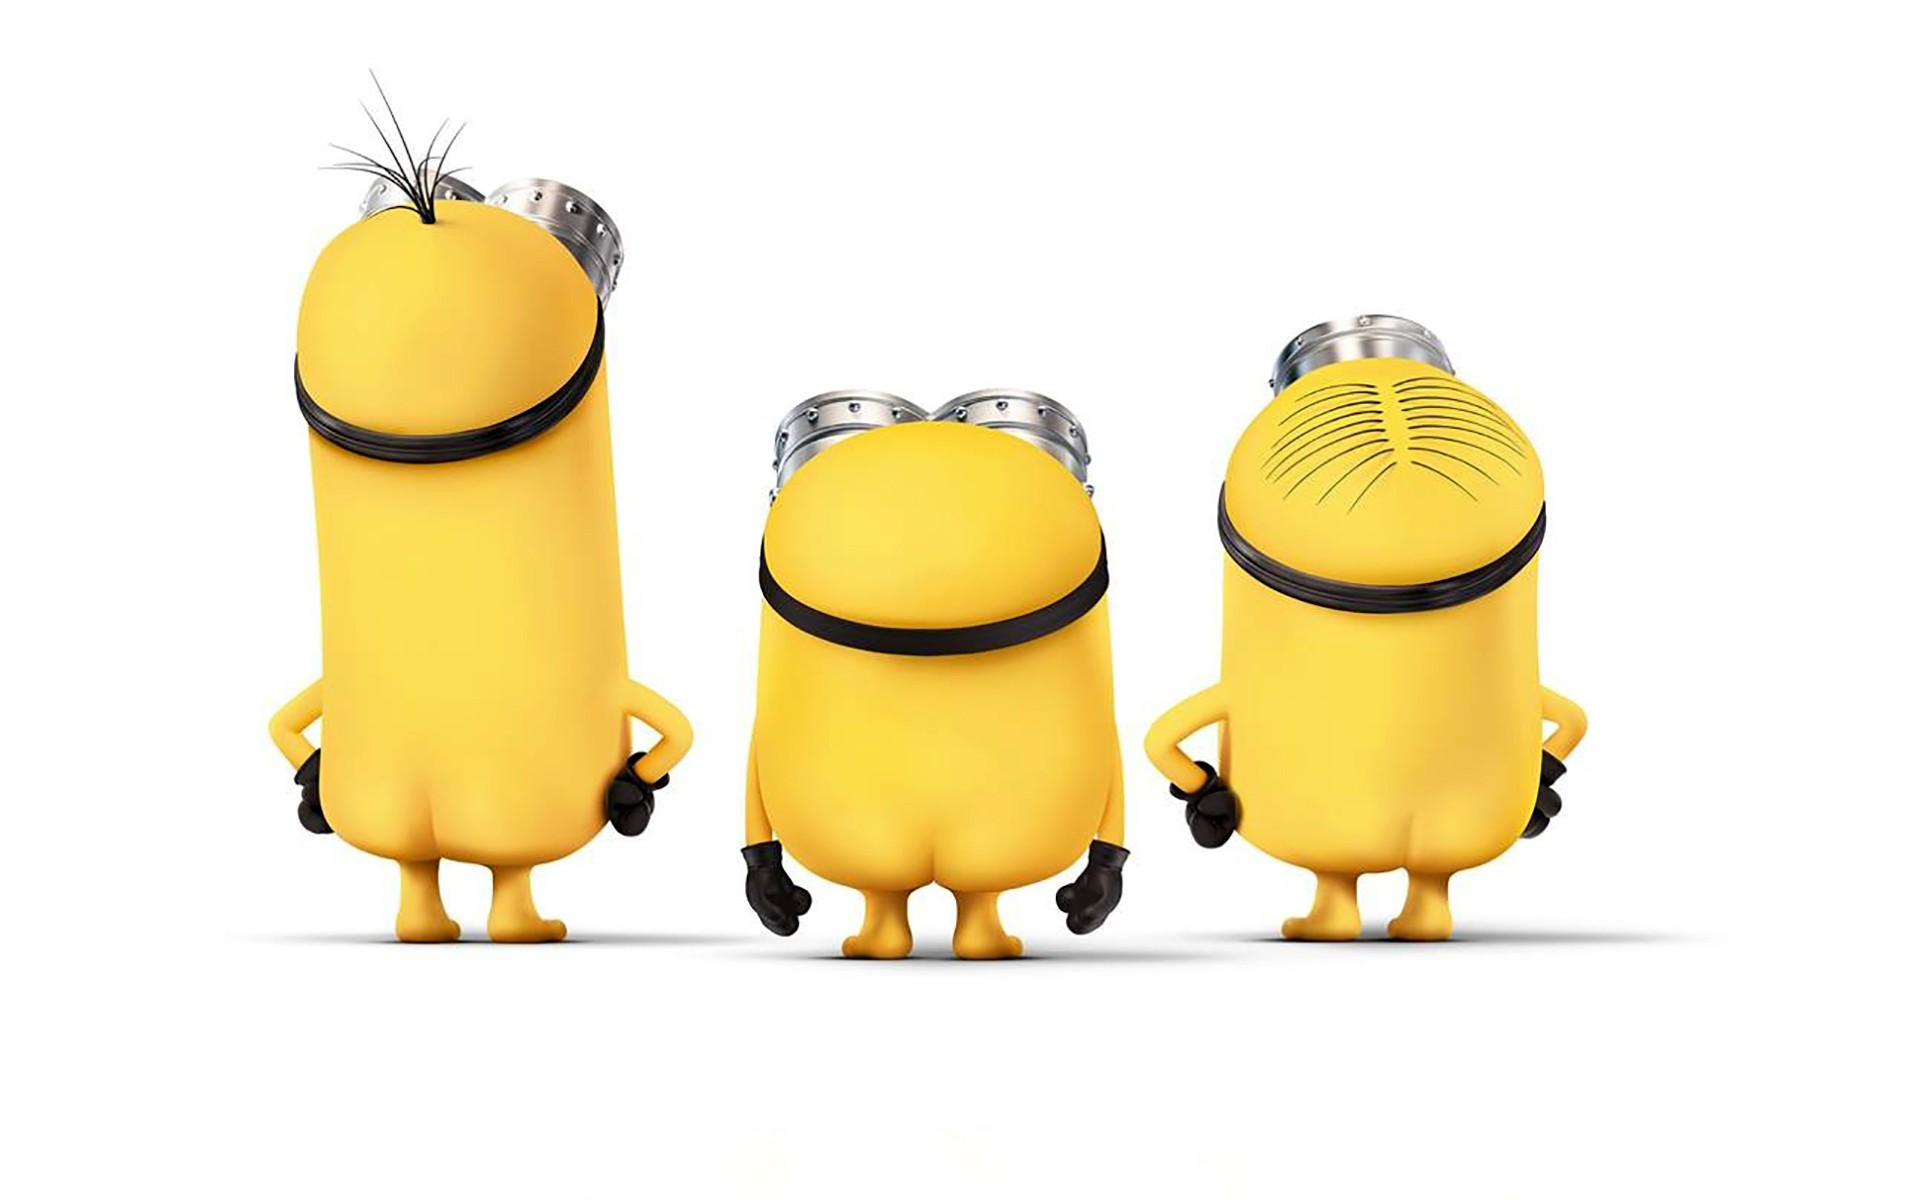 Desktop Exchange wallpaper » Movie pictures » Minions wallpapers 1240